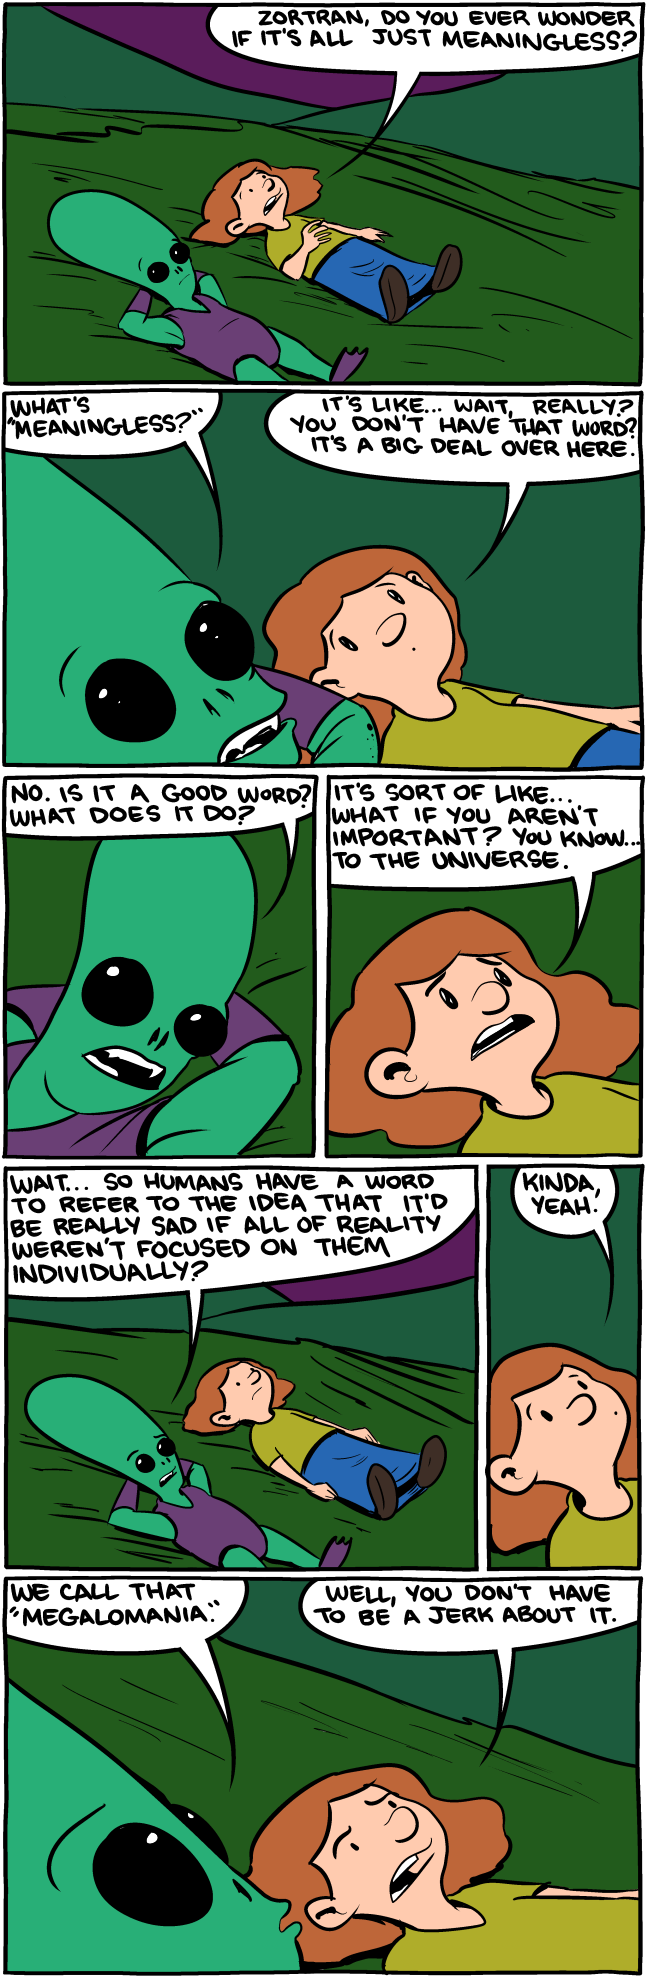 Meaningless Megalomania - SMBC Comics